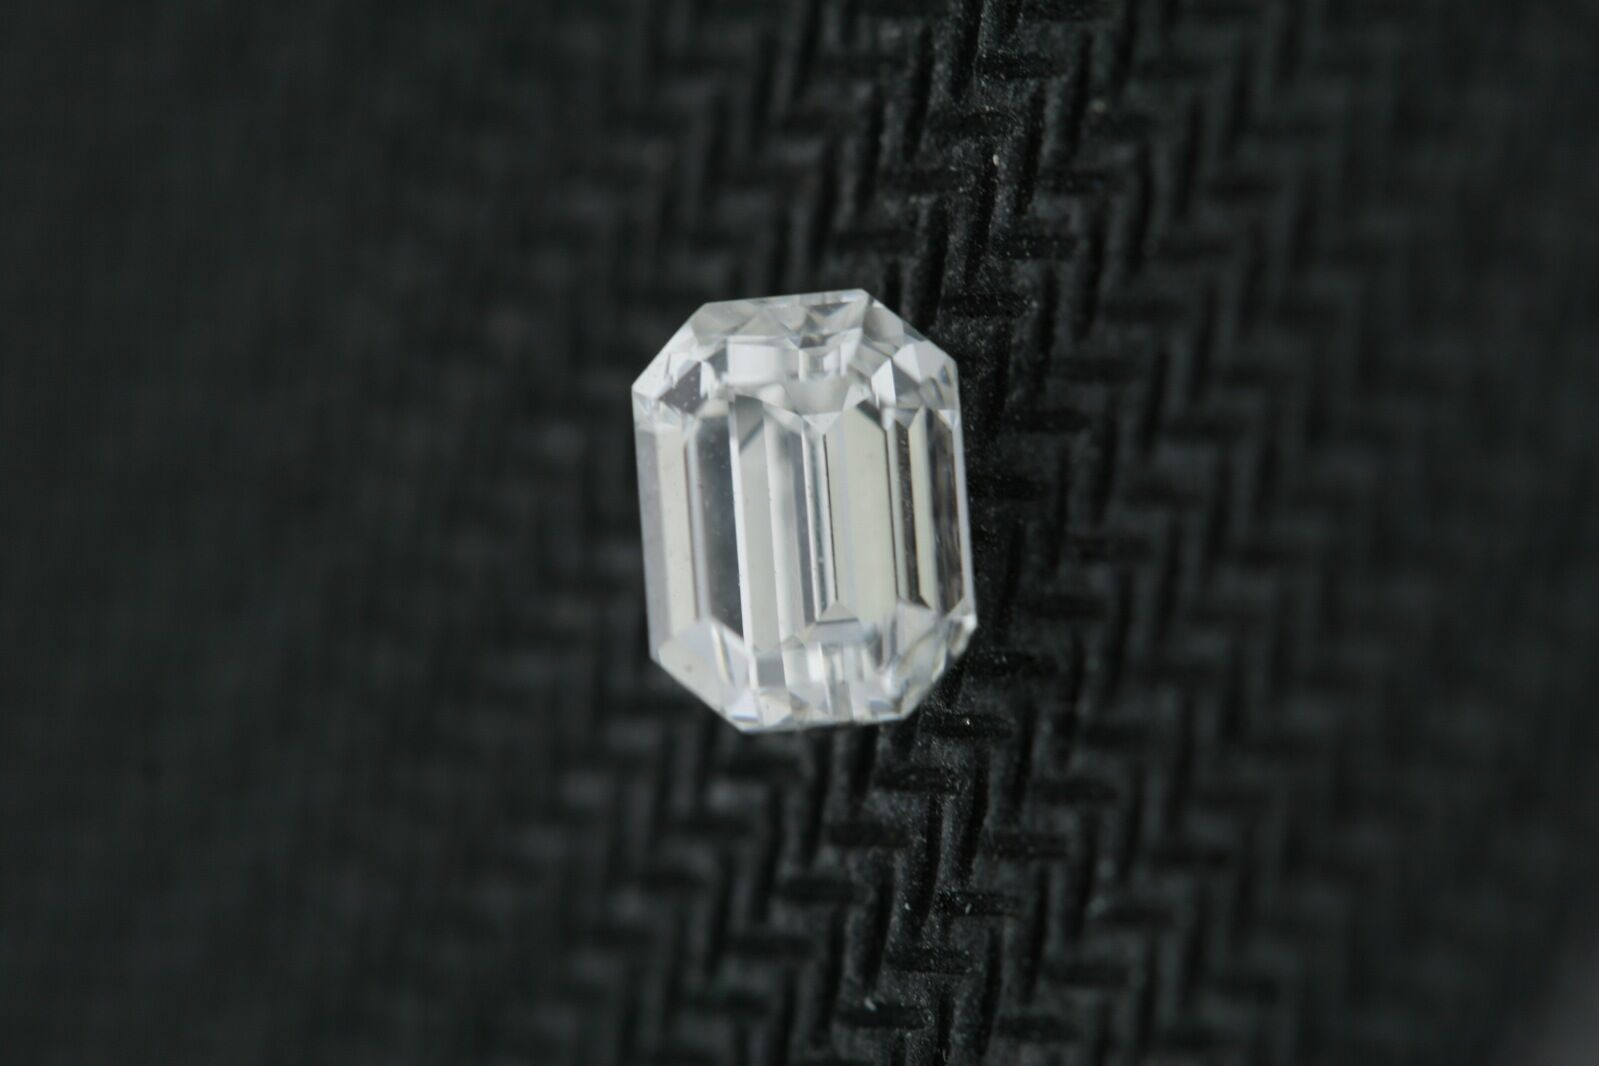 GIA .71ct Emerald Cut Loose Diamond G color, VS2 clarity 5.76 x 4.28 x 3.15mm